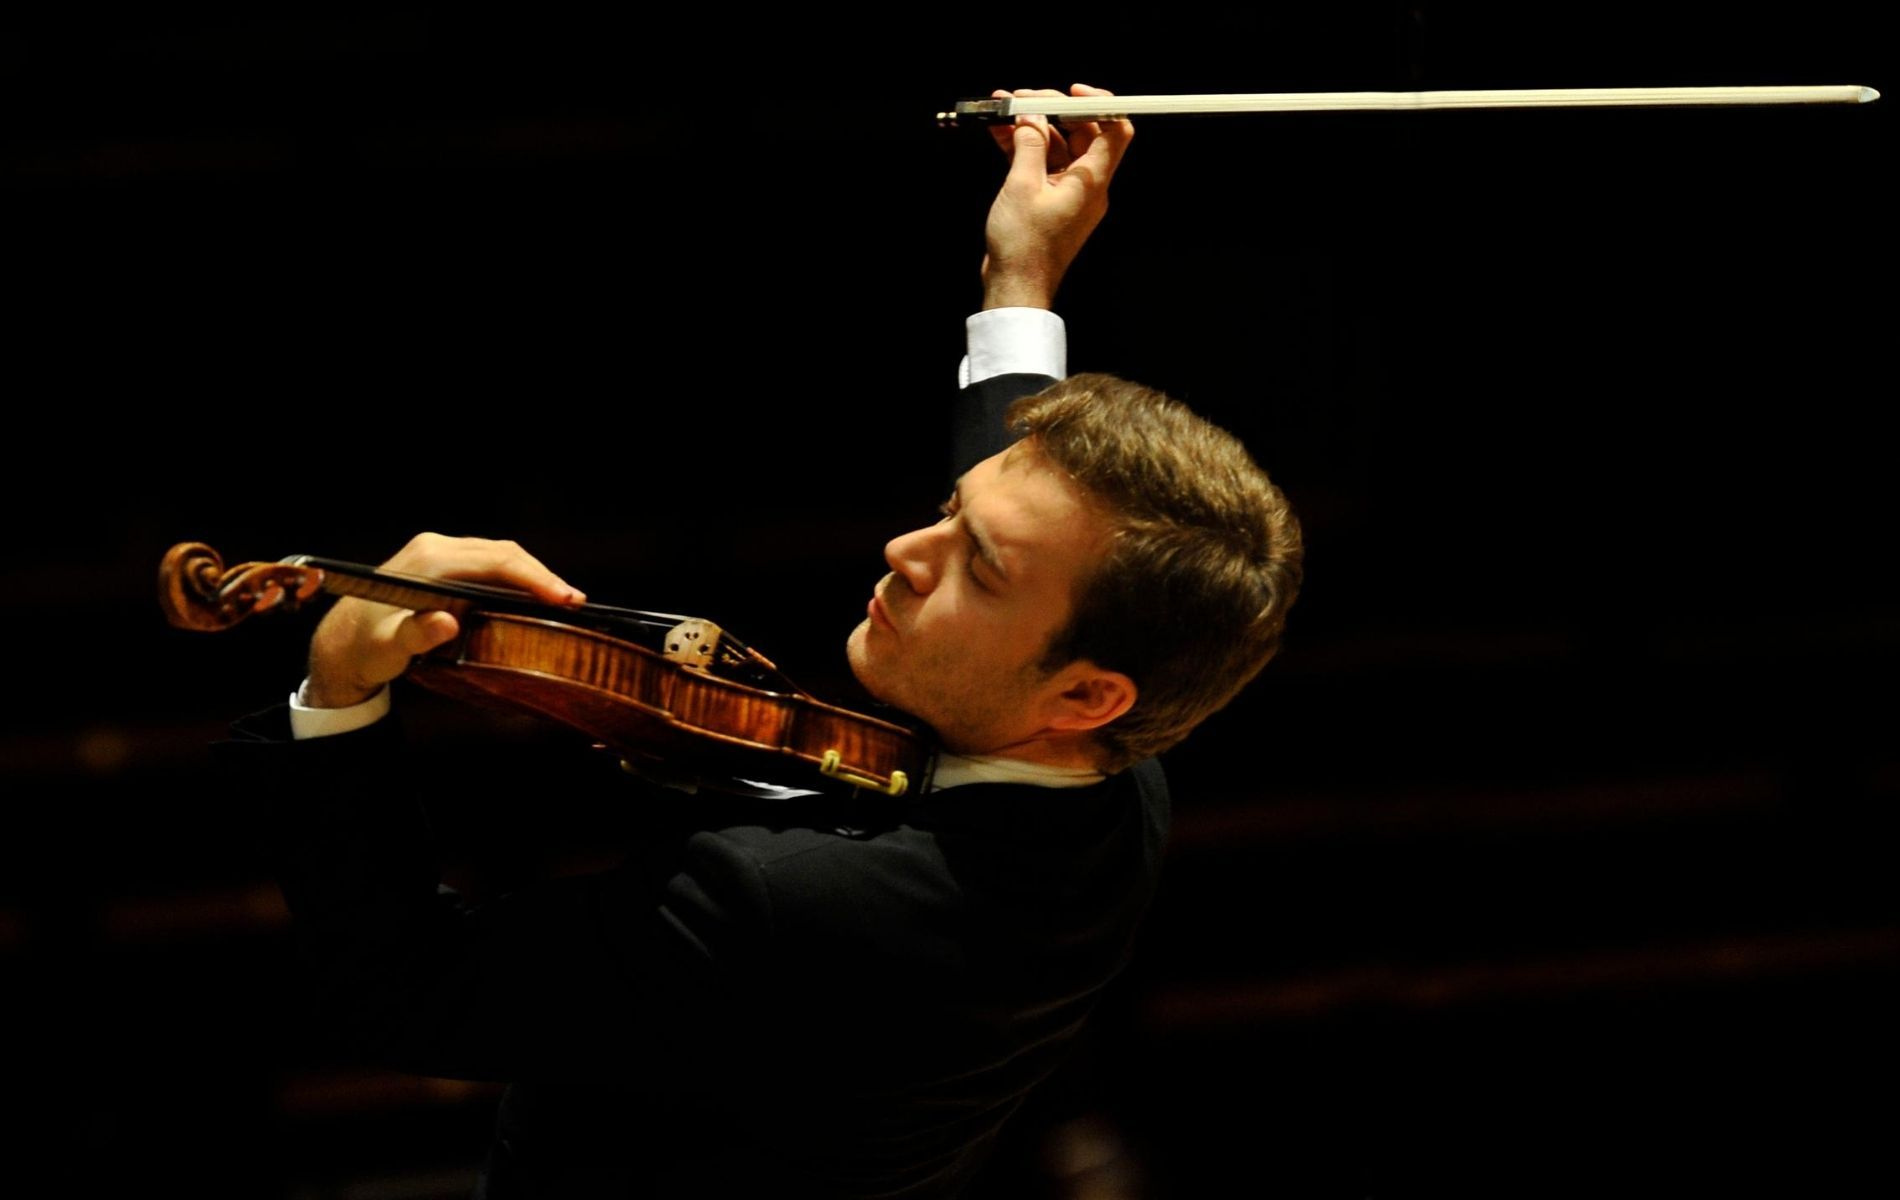 Renaud Capuçon is renowned internationally as a major soloist and recitalist